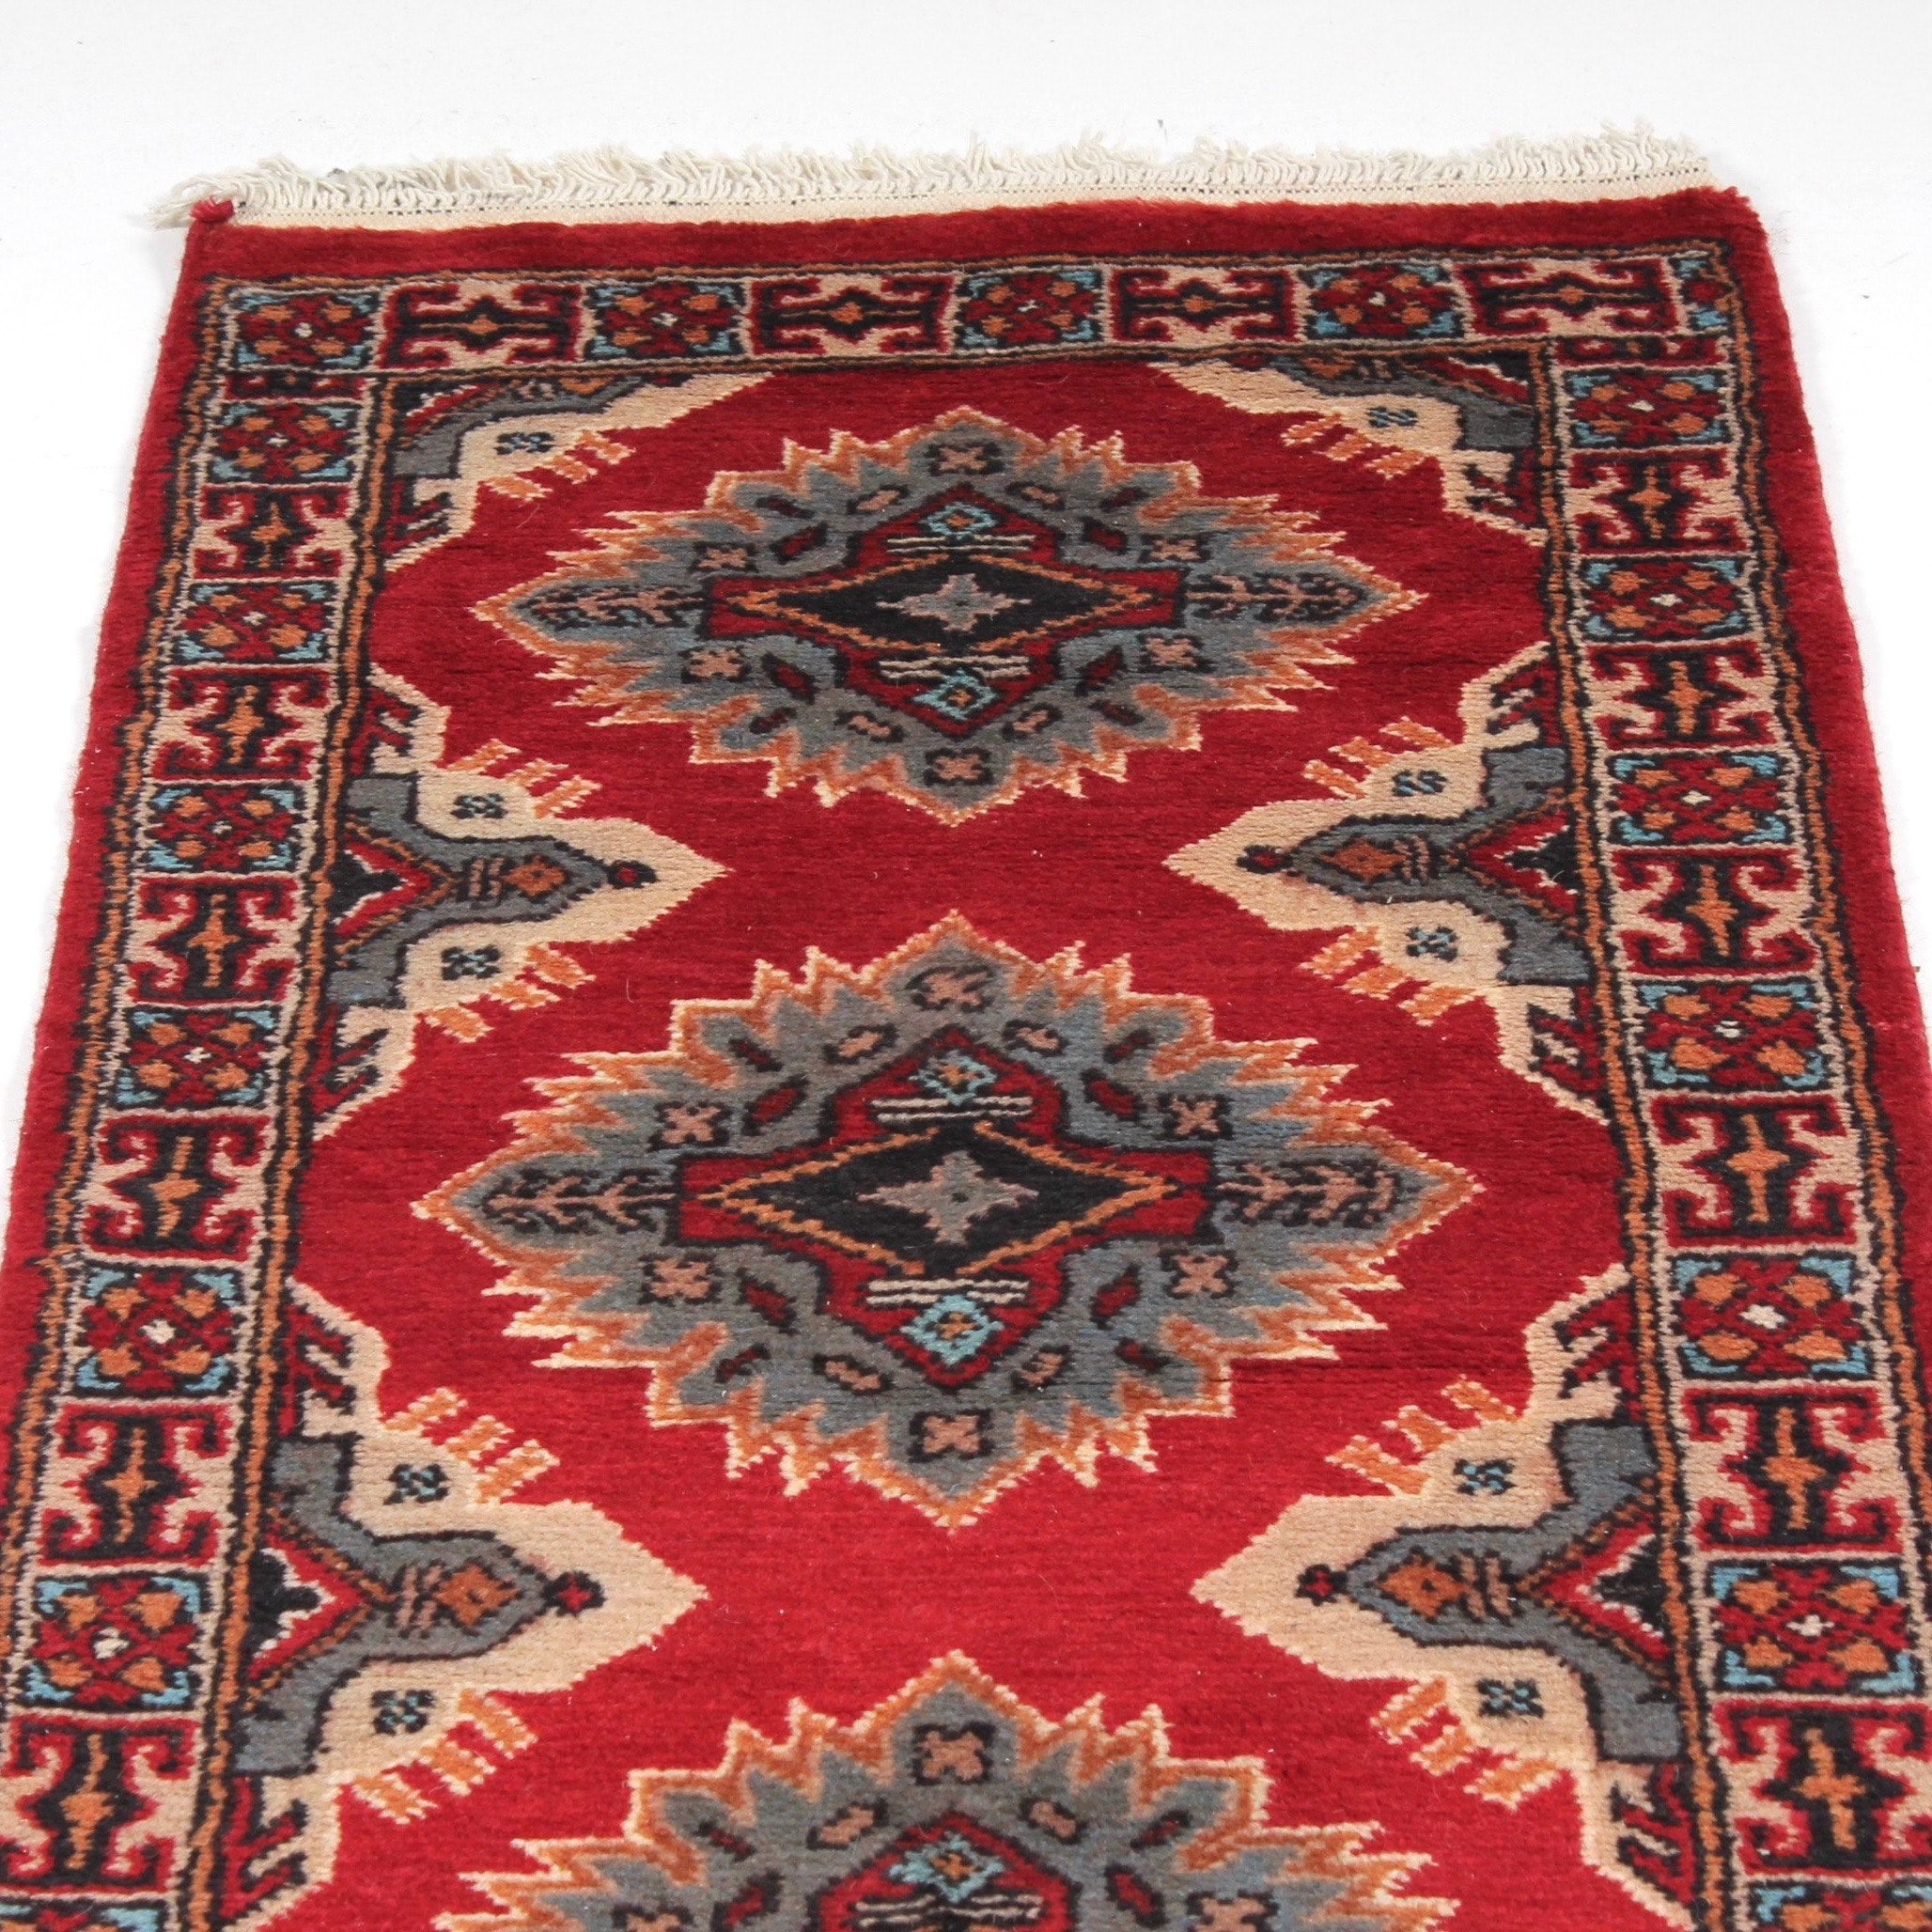 2' x 7' Hand-Knotted Indo-Persian Bokhara Runner